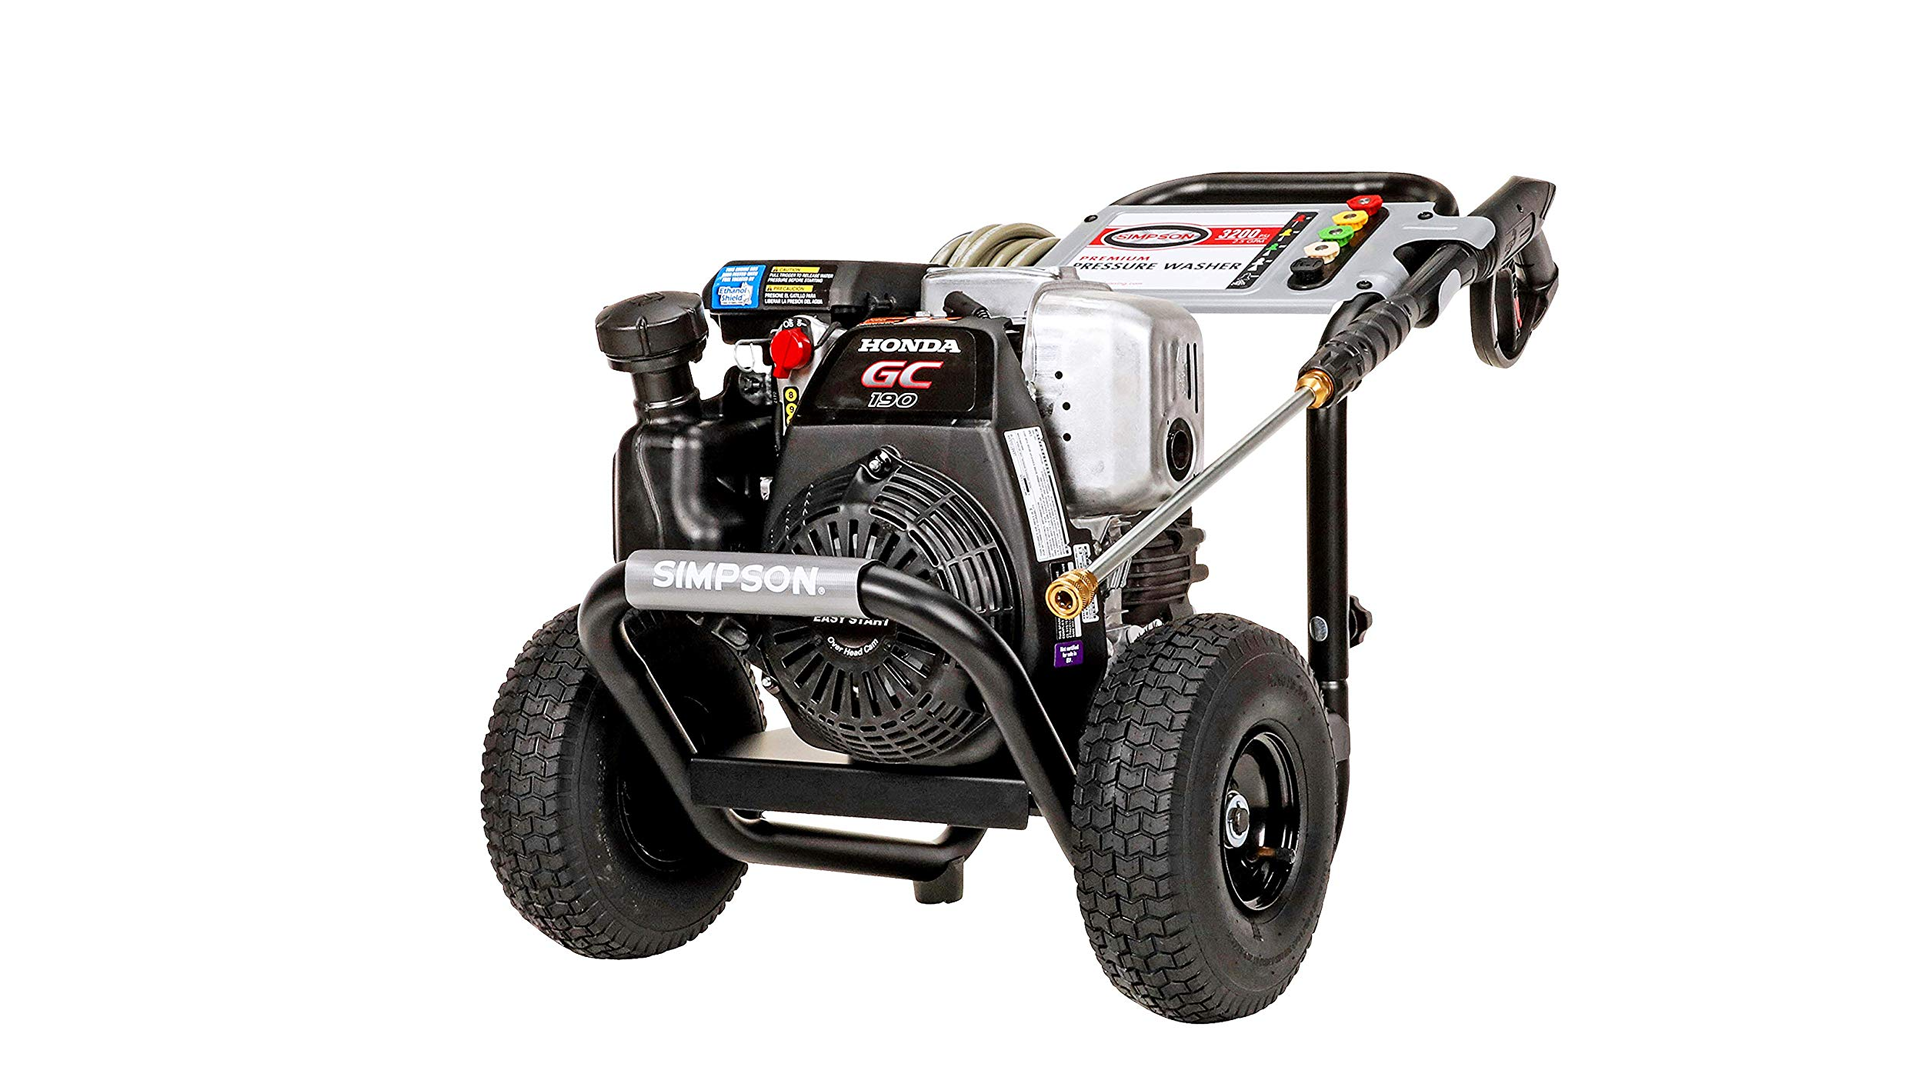 the Simpson MSH3125 Gas Power Washer